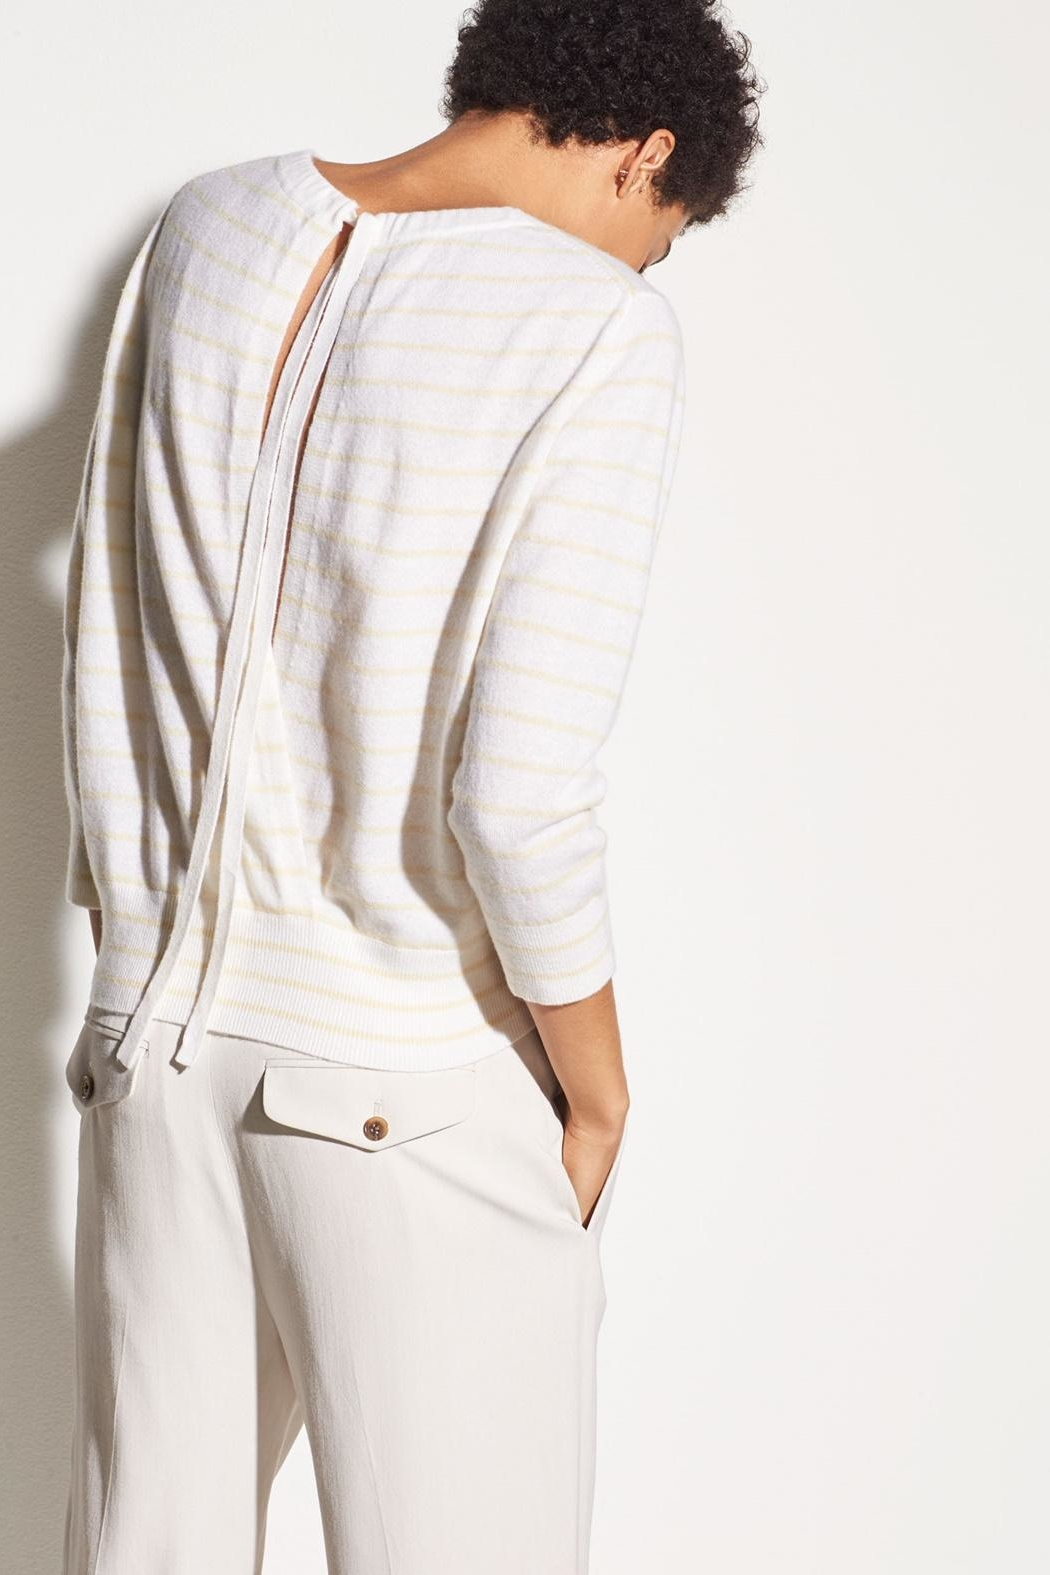 Vince Striped Tie Sweater - Back Cropped Image